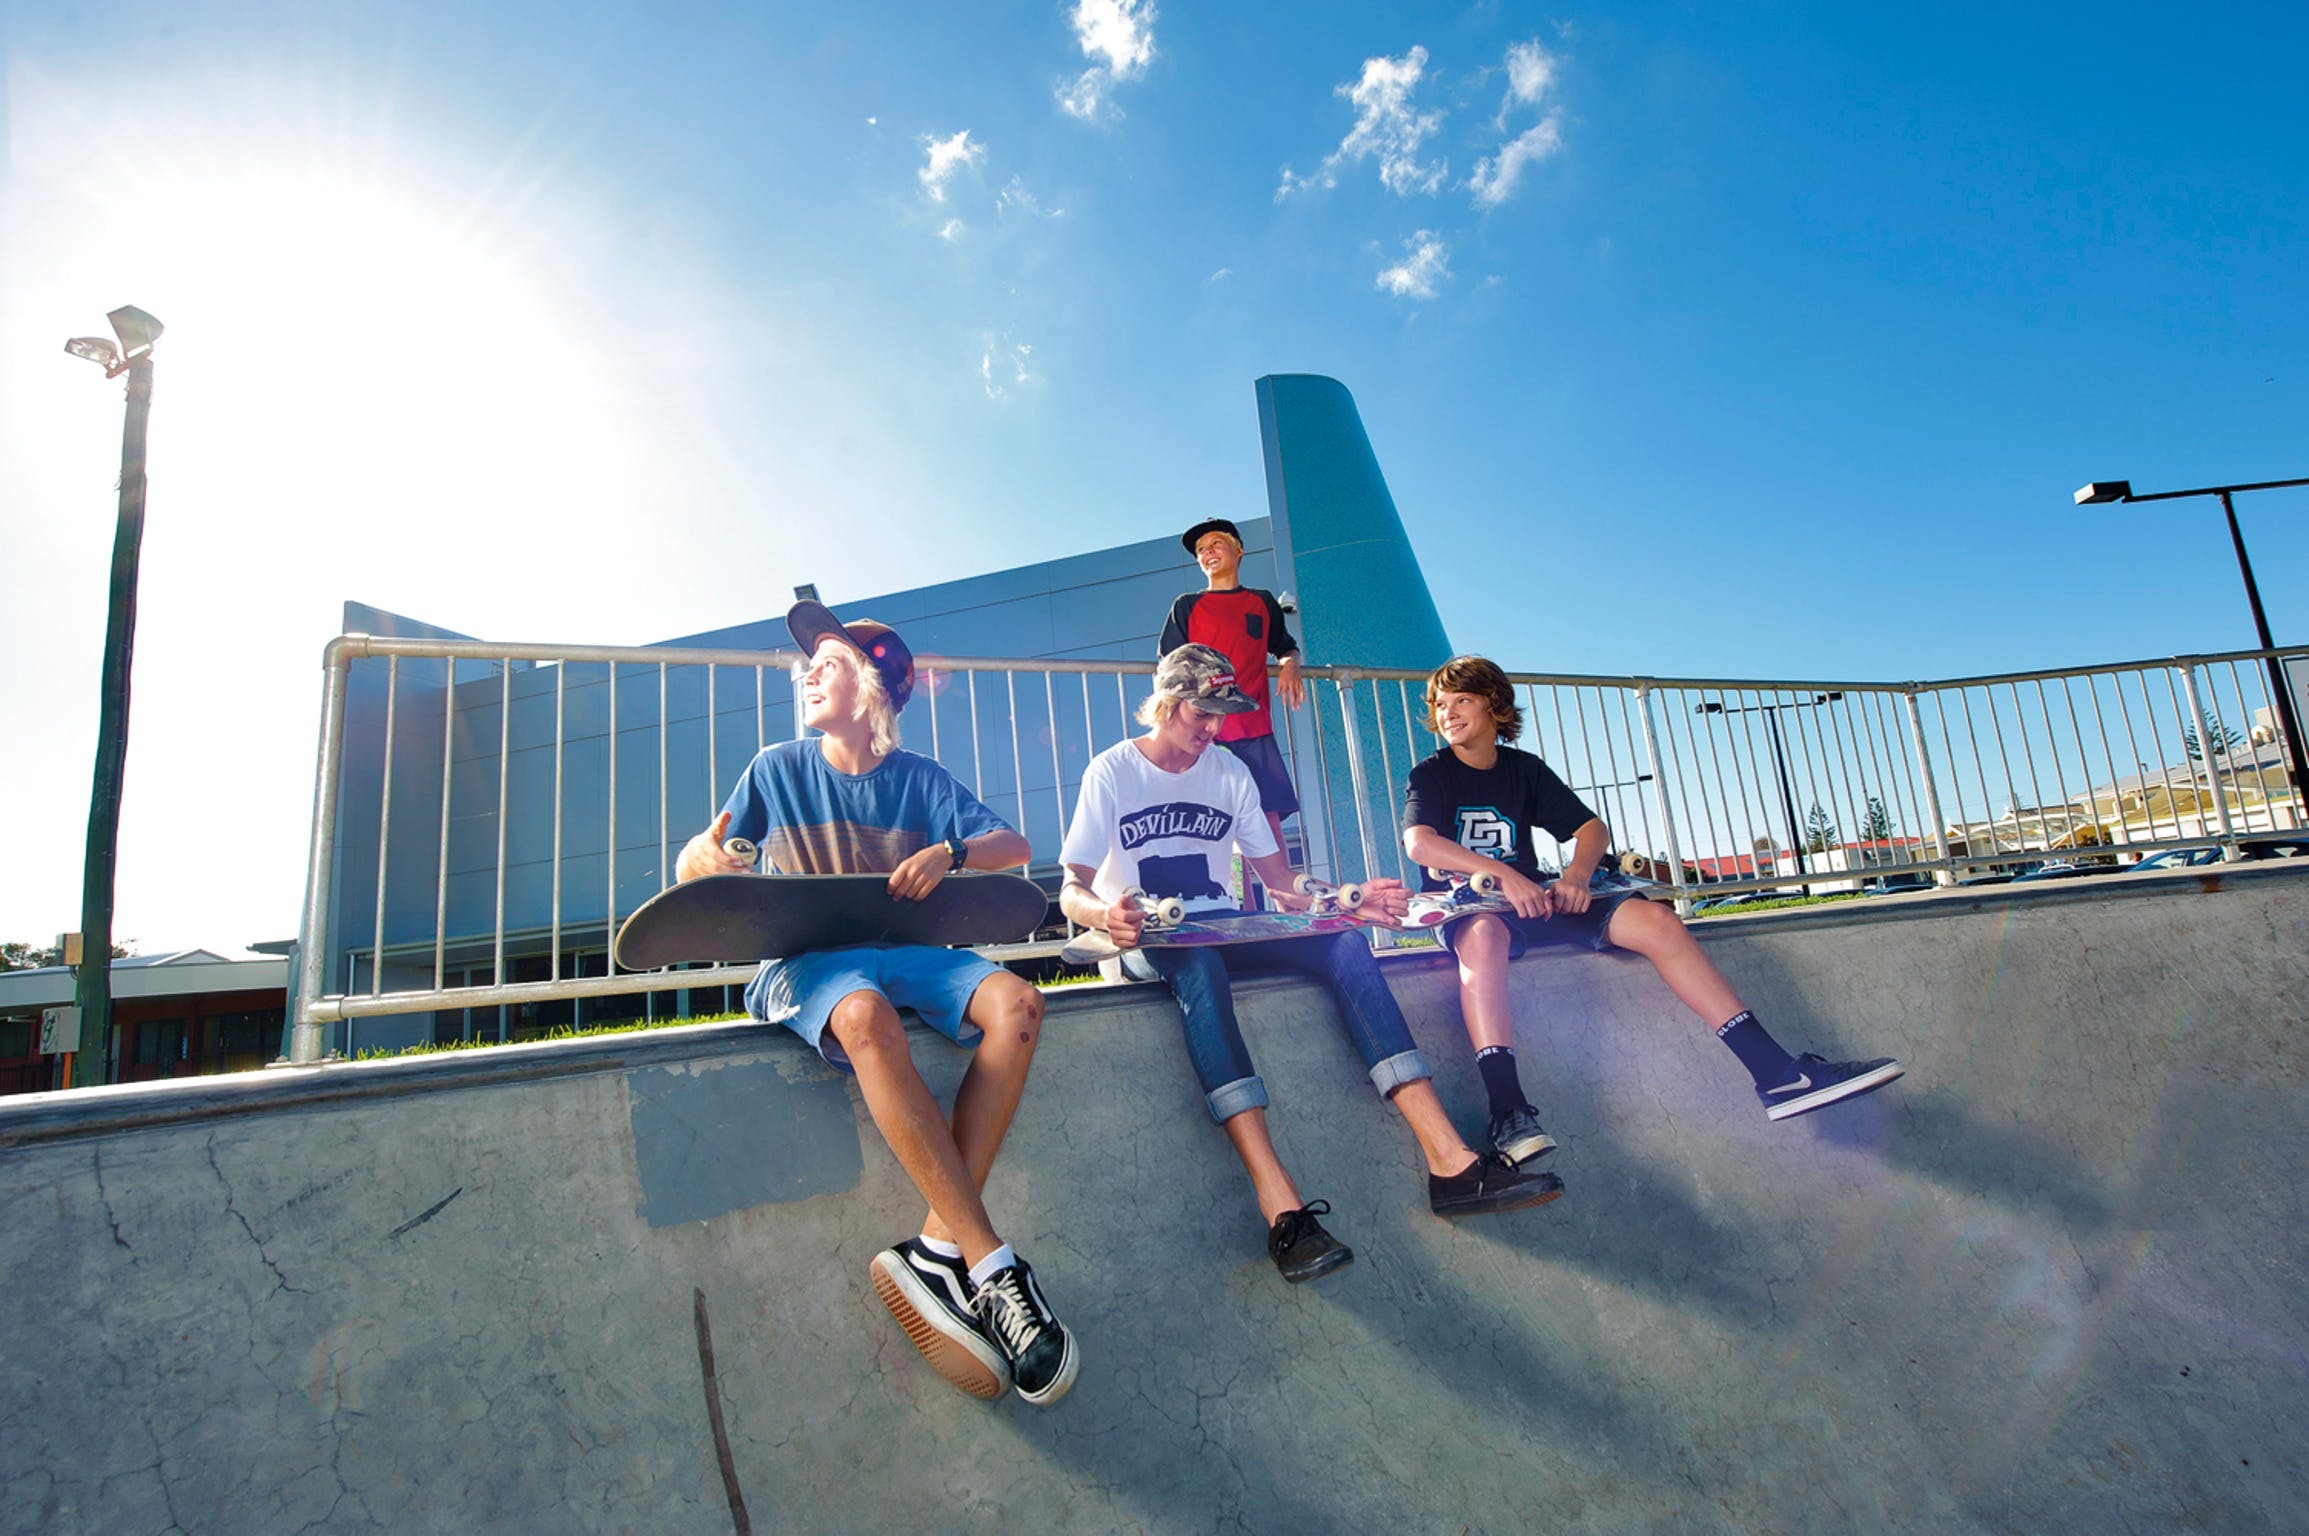 Fair Go Skate Comp - Byron Bay Accommodations